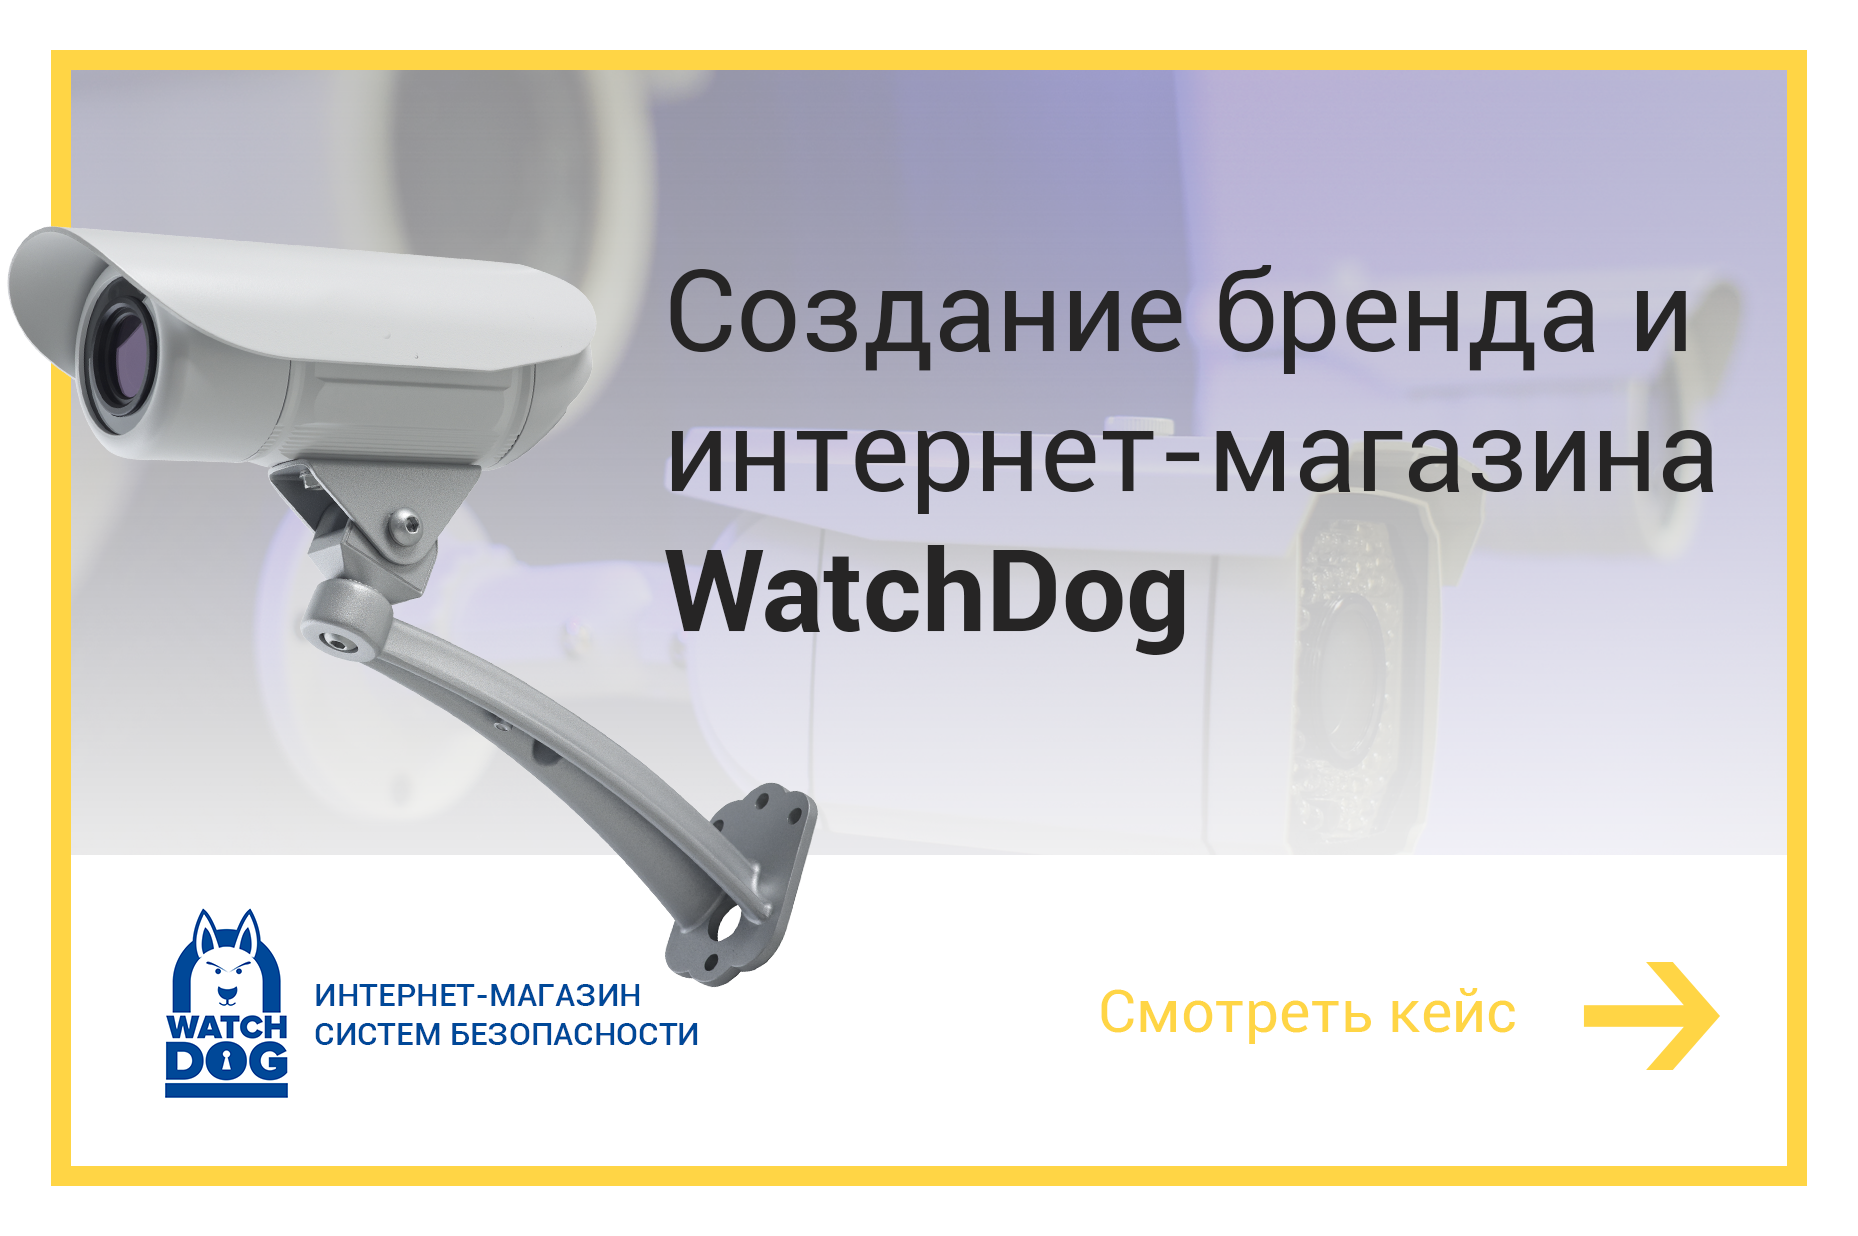 WatchDogPreviewMobile